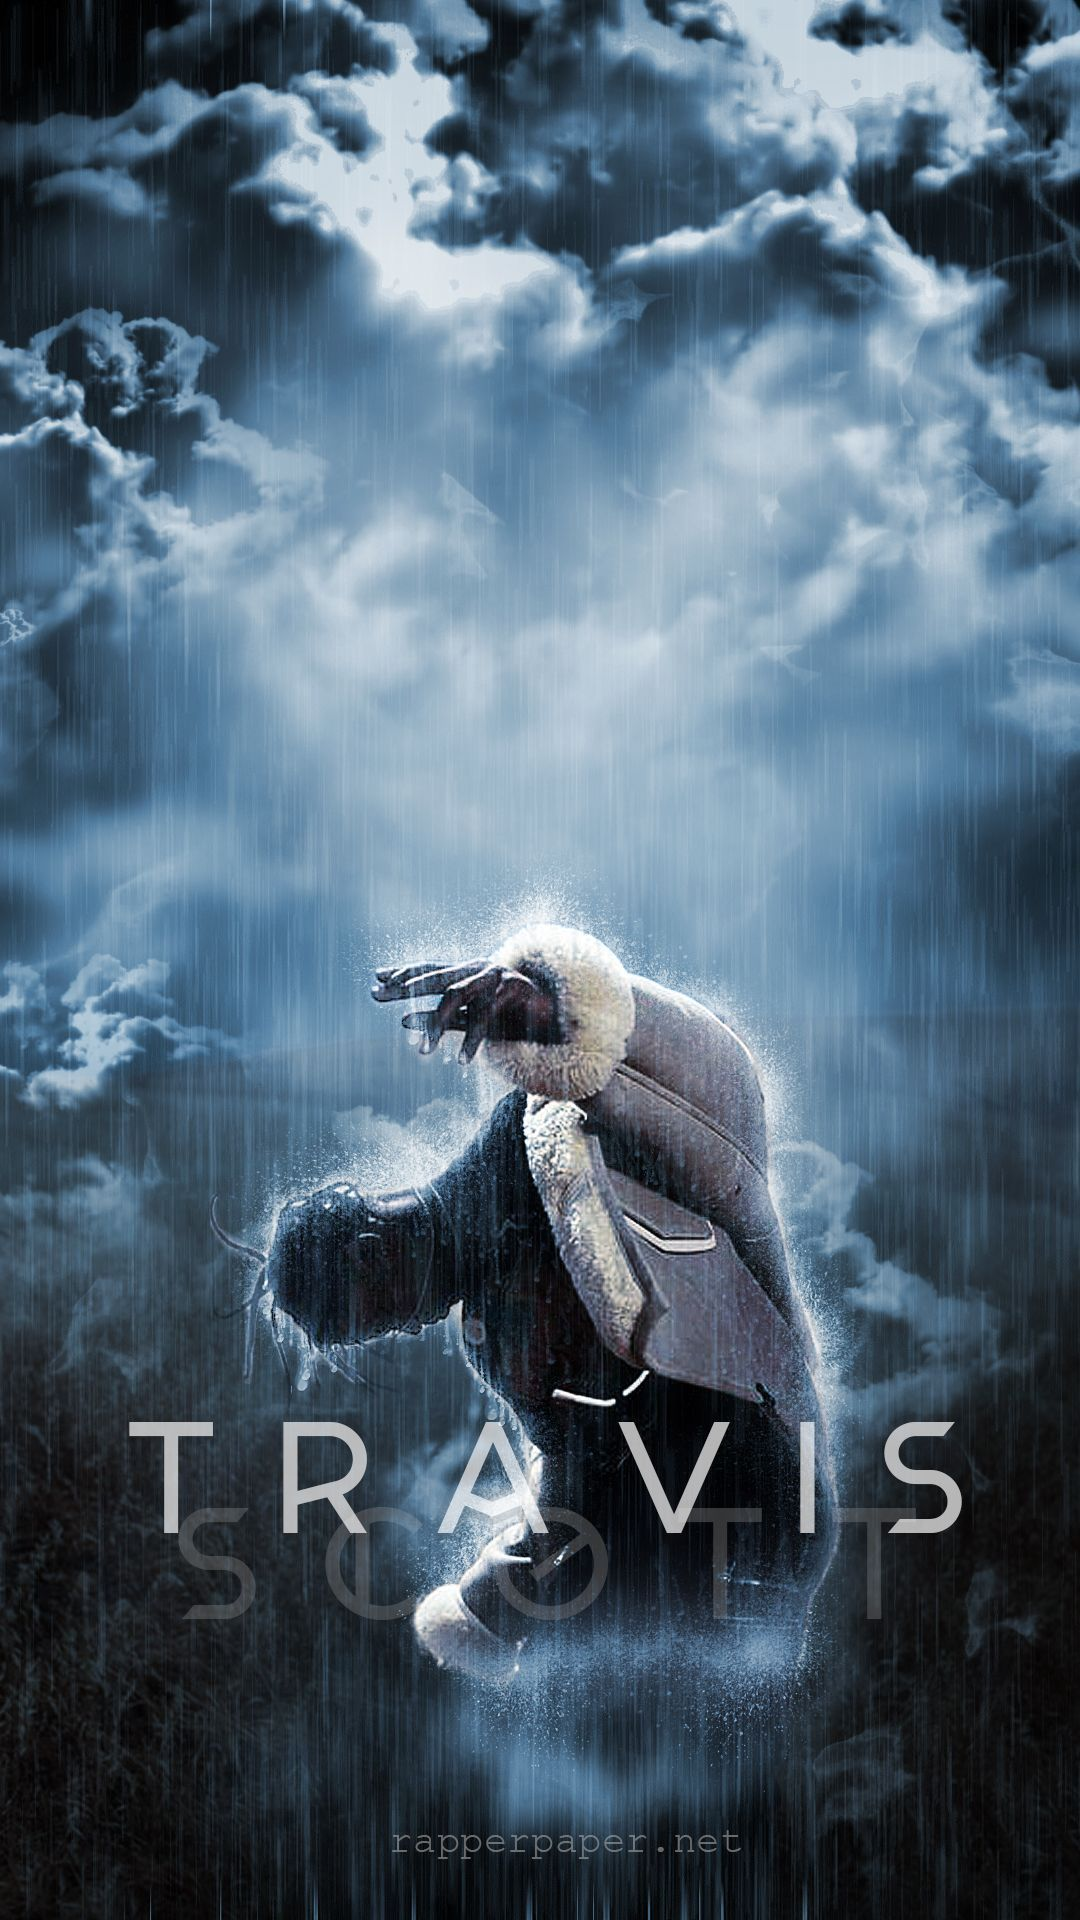 Travis Scott Wallpaper rain #travisscottwallpapers Visit for more Travis Scott wallpapers.  #wallpaper #travisscott #travisscottwallpapers Travis Scott Wallpaper rain #travisscottwallpapers Visit for more Travis Scott wallpapers.  #wallpaper #travisscott #travisscottwallpapers